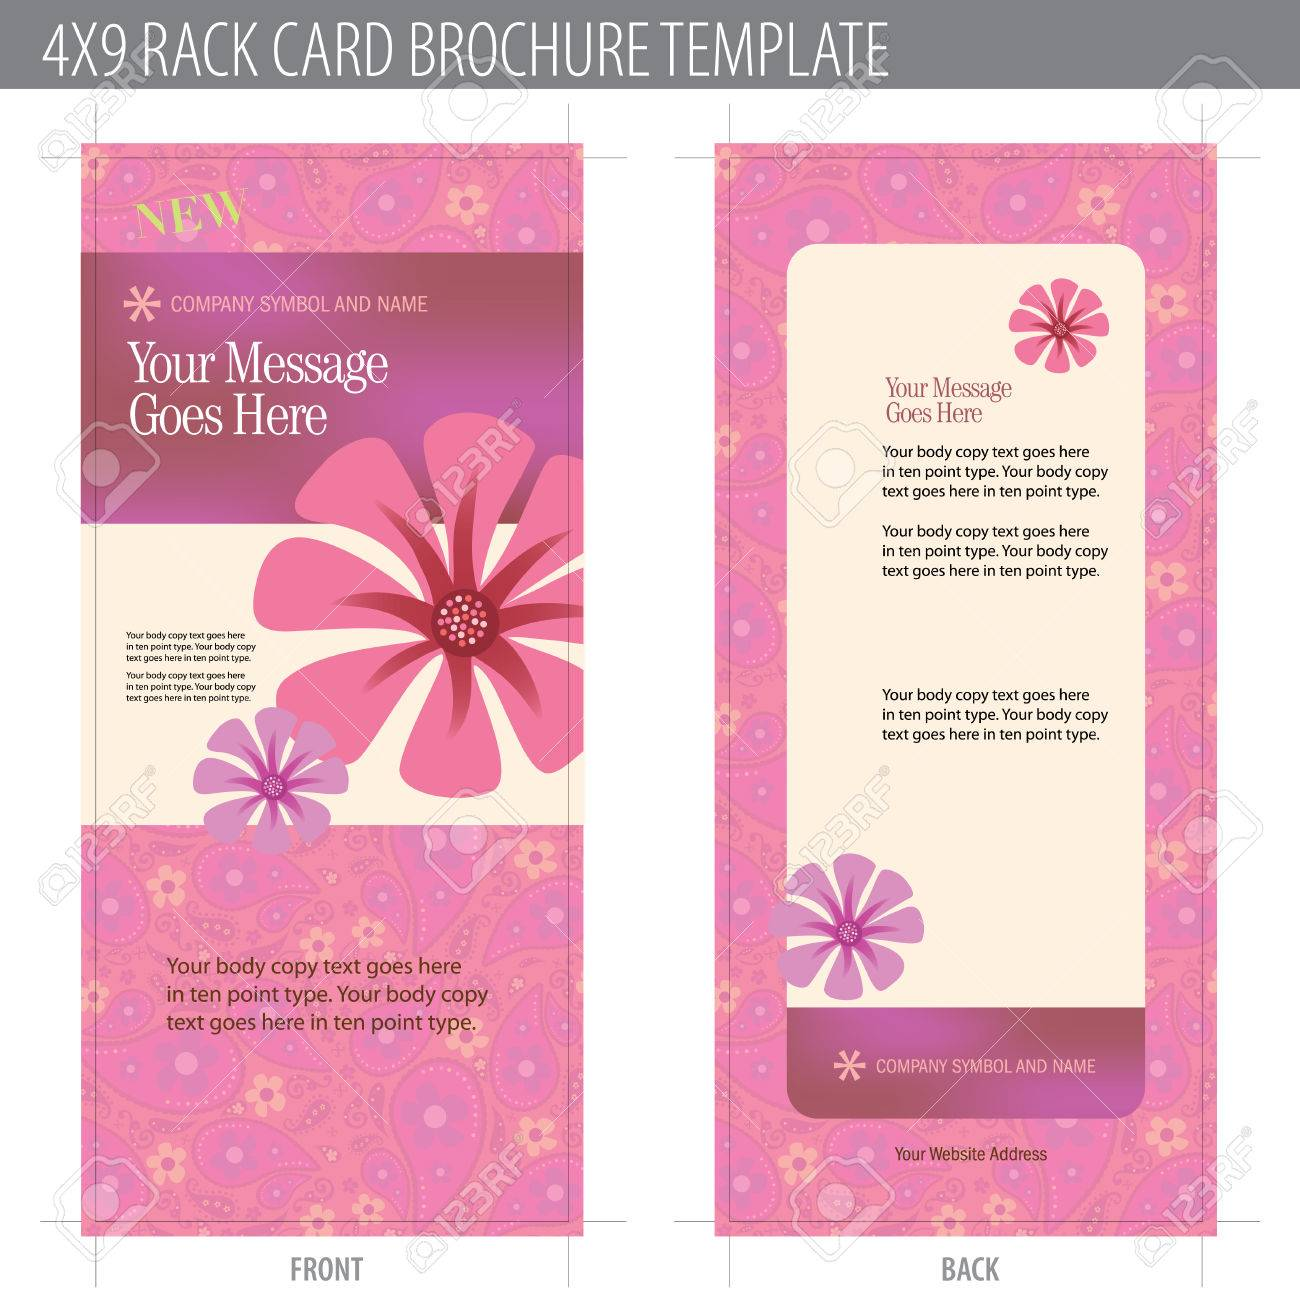 4x9 Rack Card Brochure Template (includes cropmarks, bleeds, and keyline - elements in layers) More in portfolio Stock Vector - 4775971